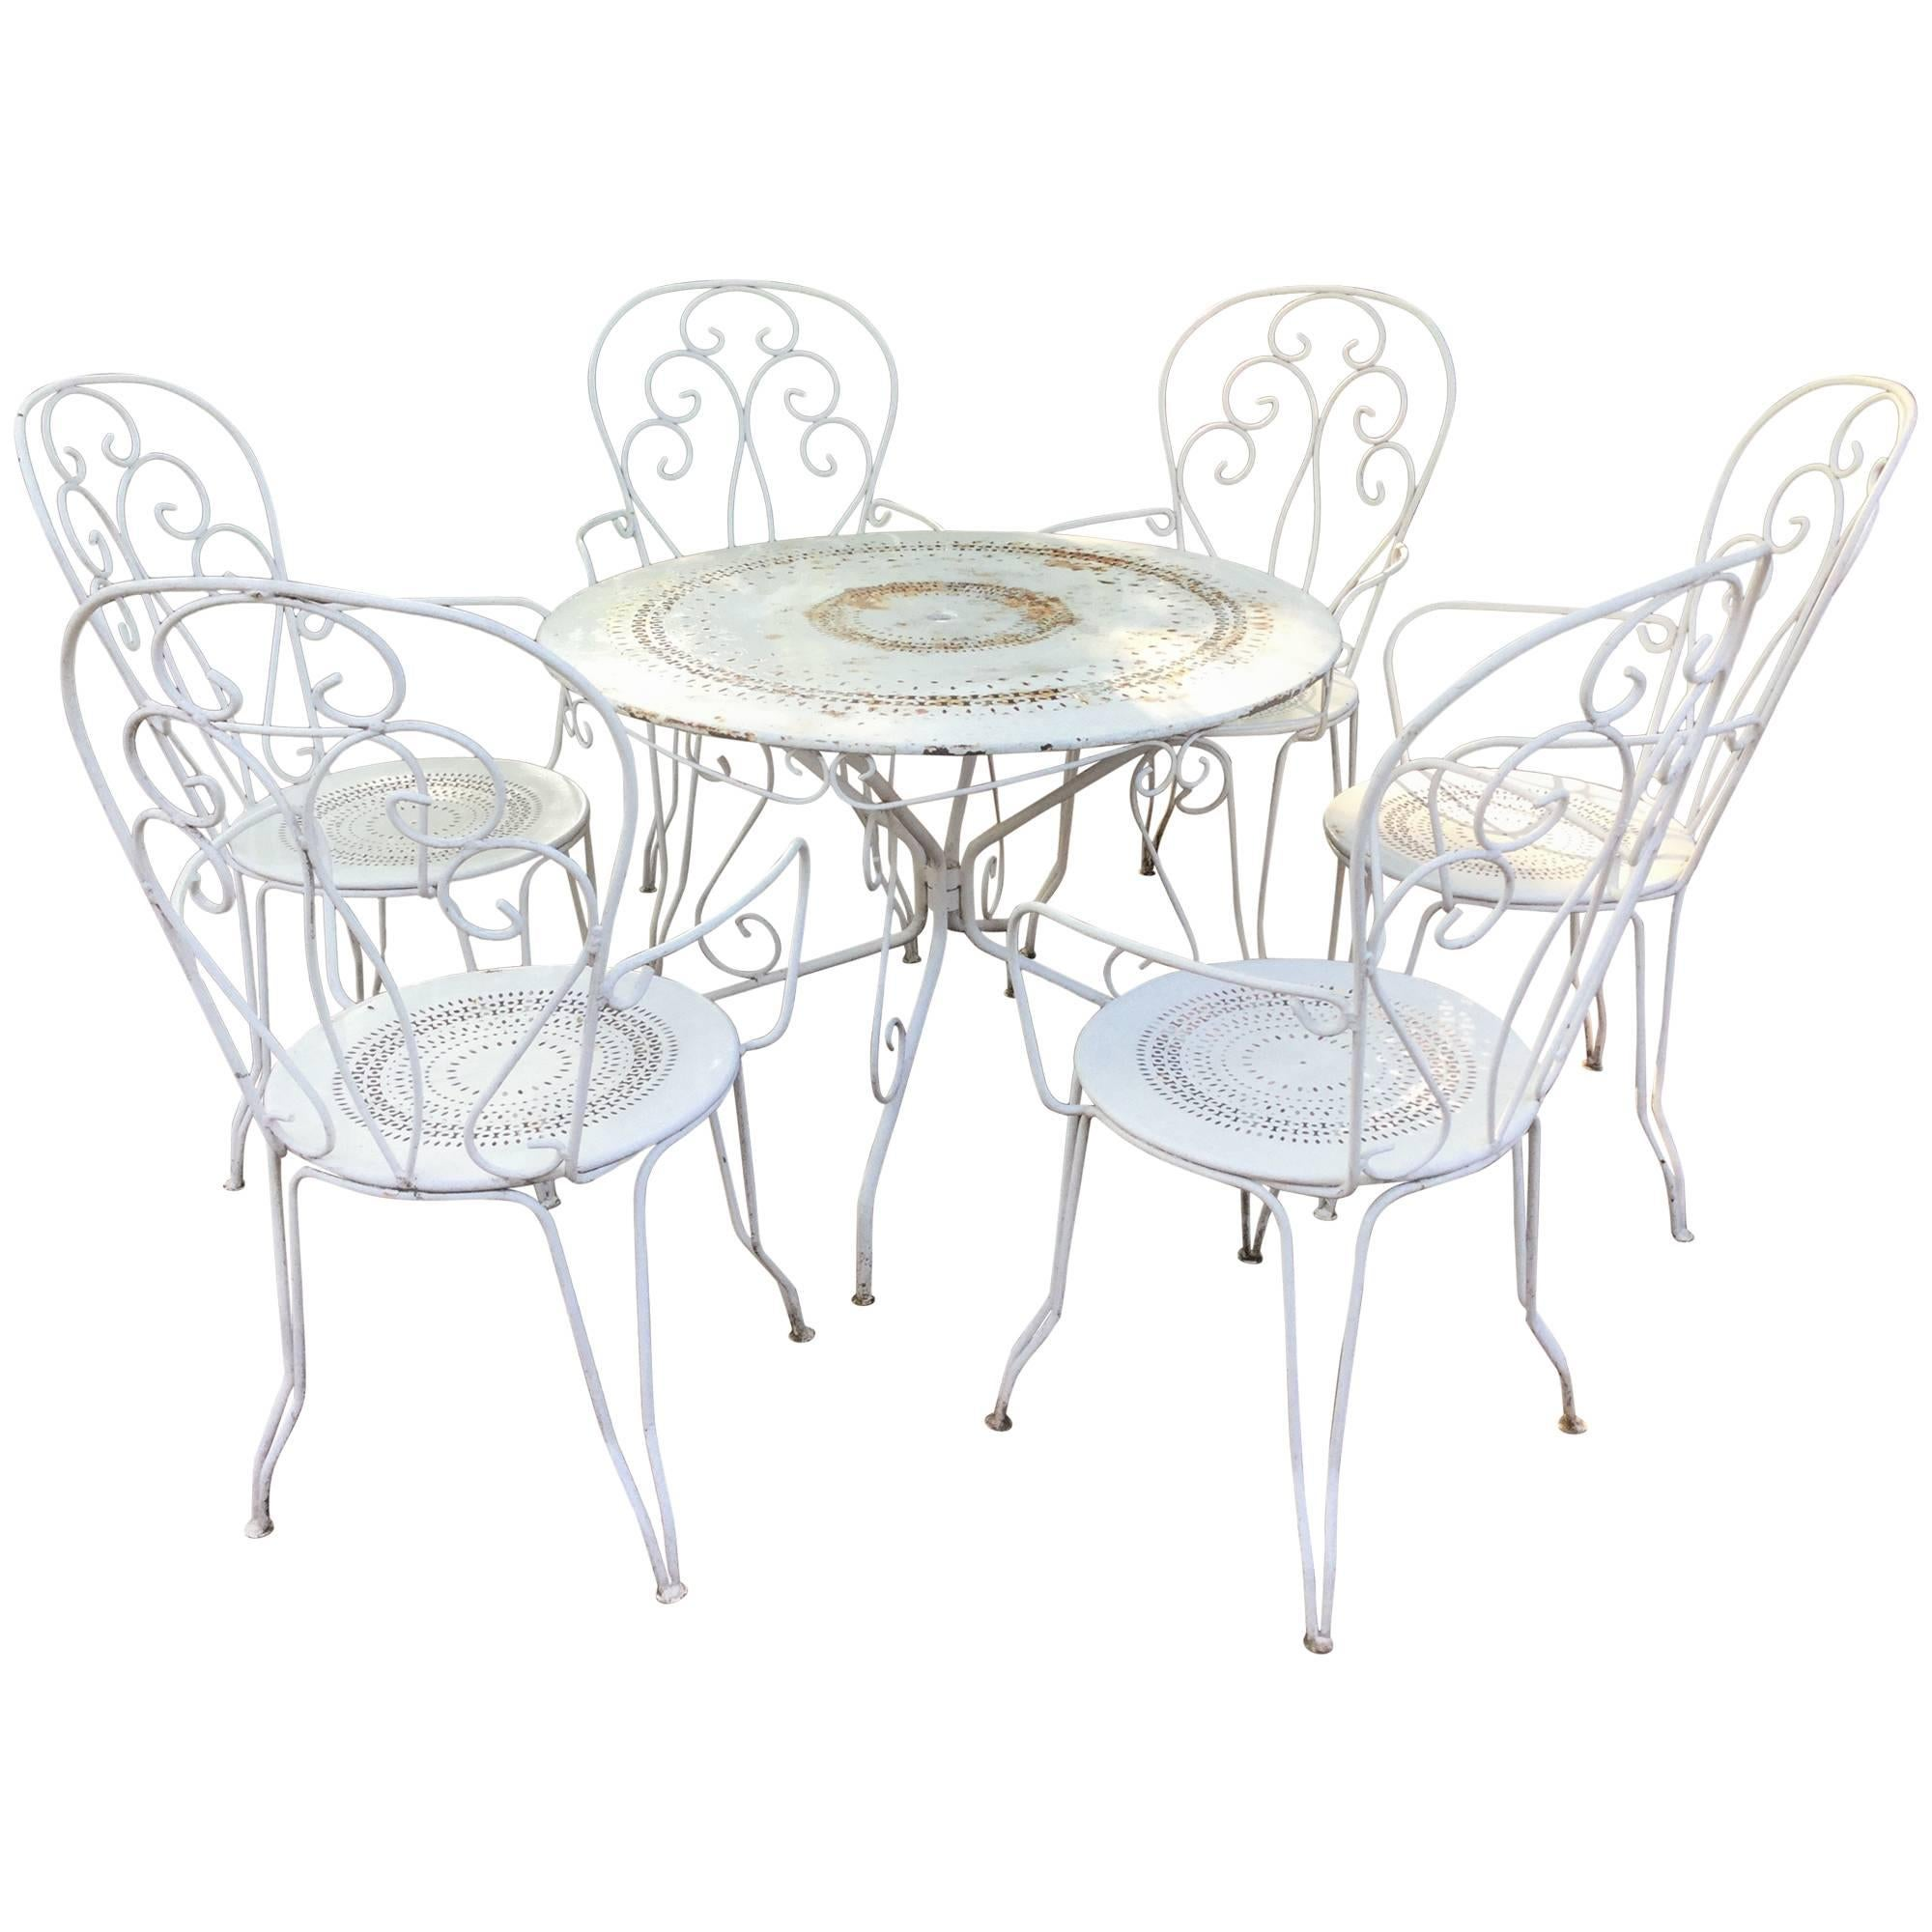 charming vintage french bistro dining table and chairs for sale at rh 1stdibs com Indoor Bistro Table and Chairs French Country Bistro Table and Chairs